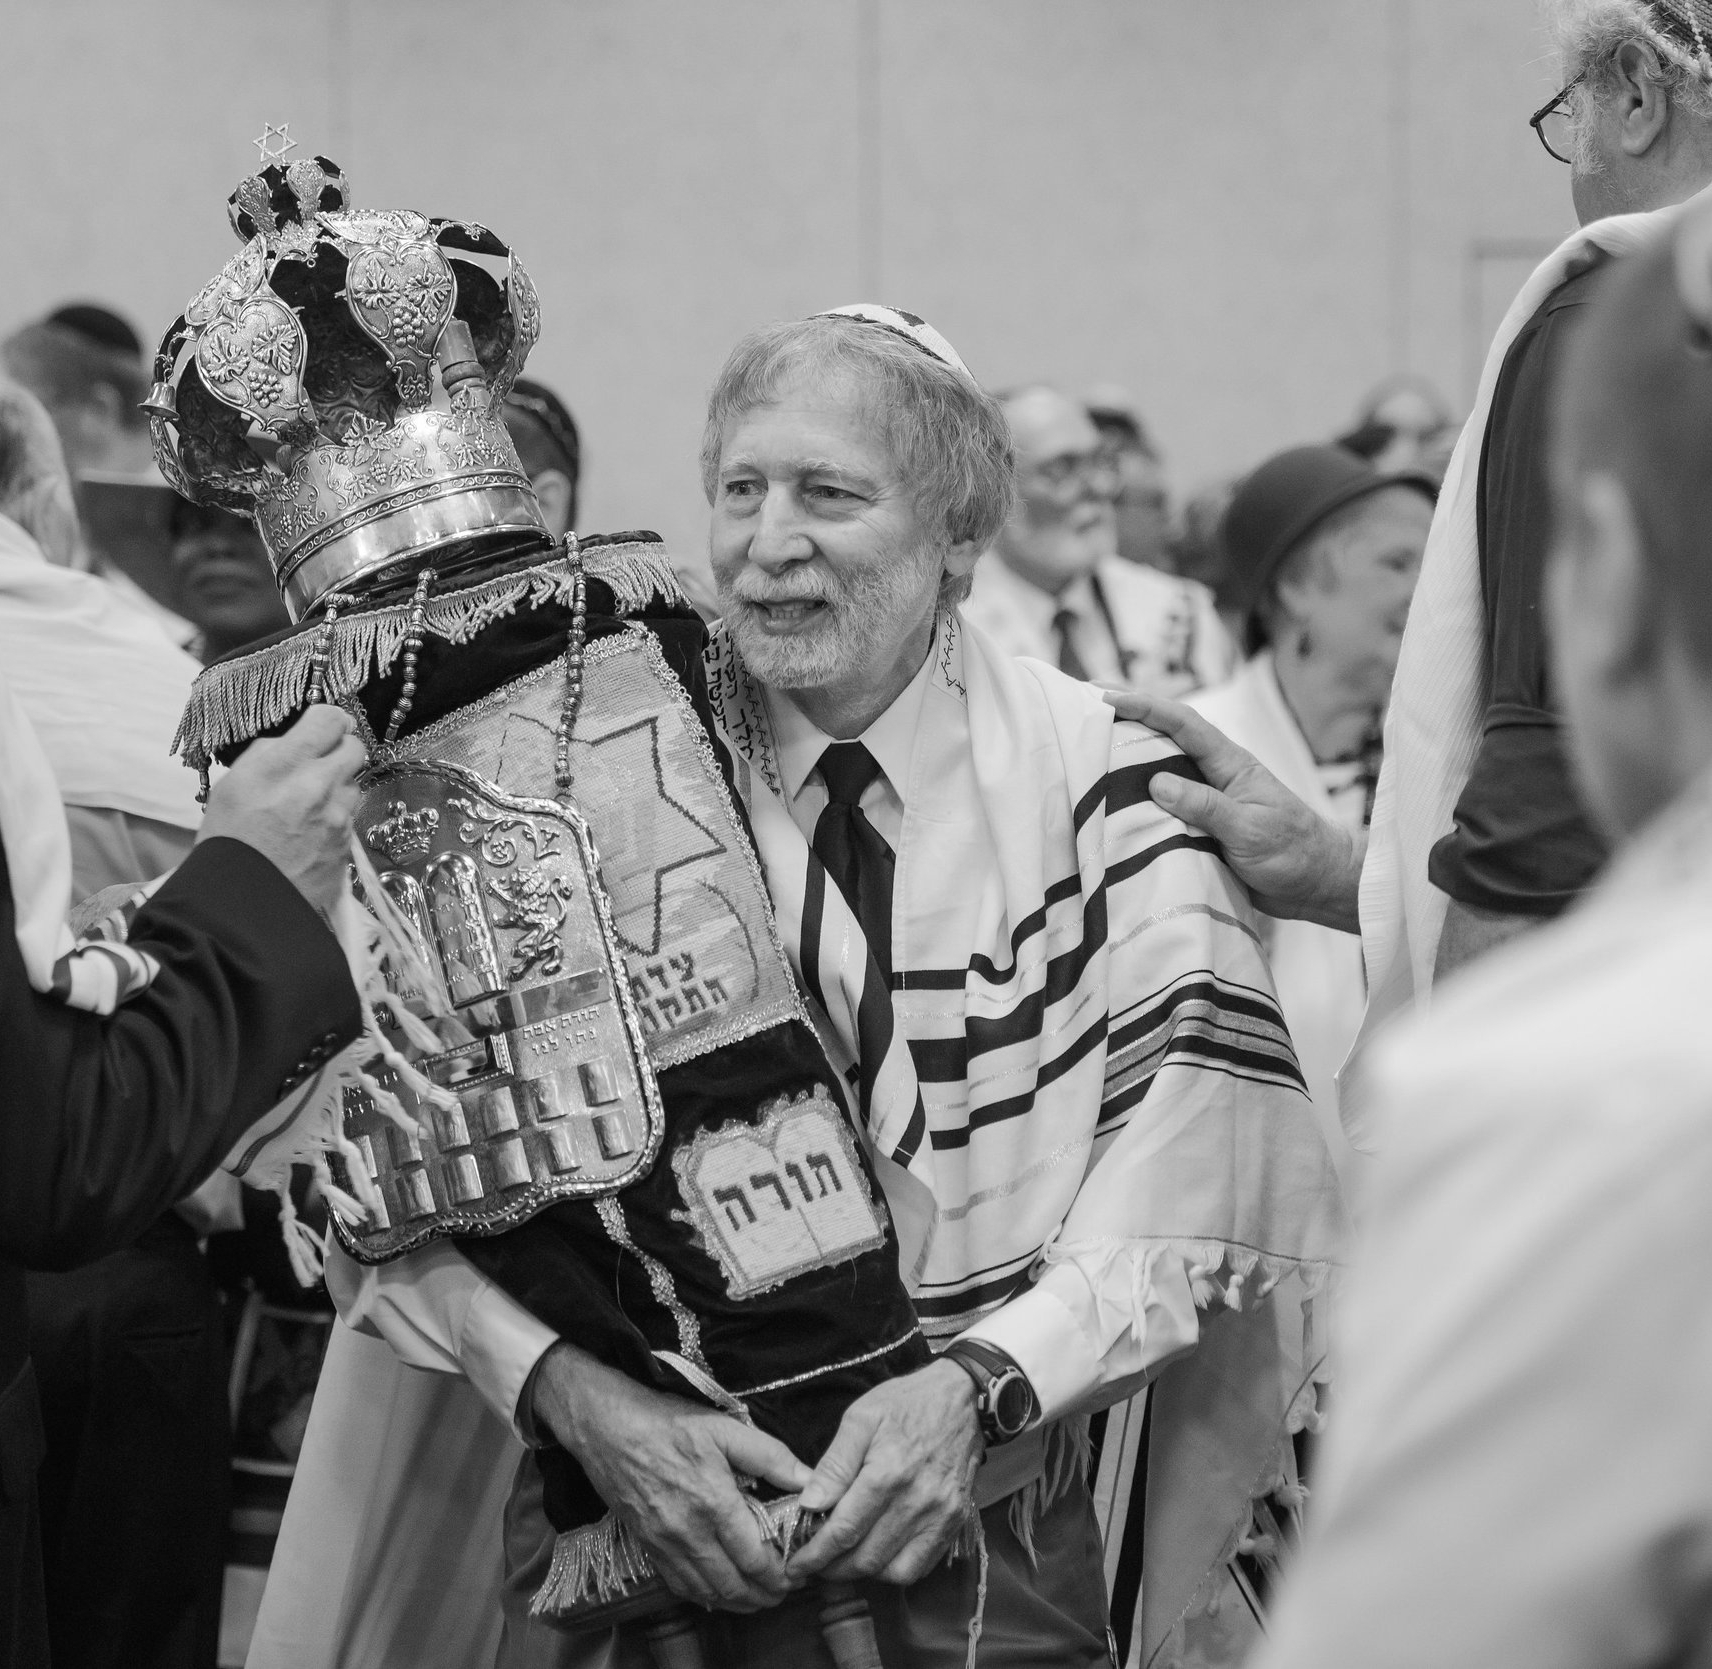 Elliot Freeman leads a UMJC Torah procession in Chicago 38 years after co-founding the Union.